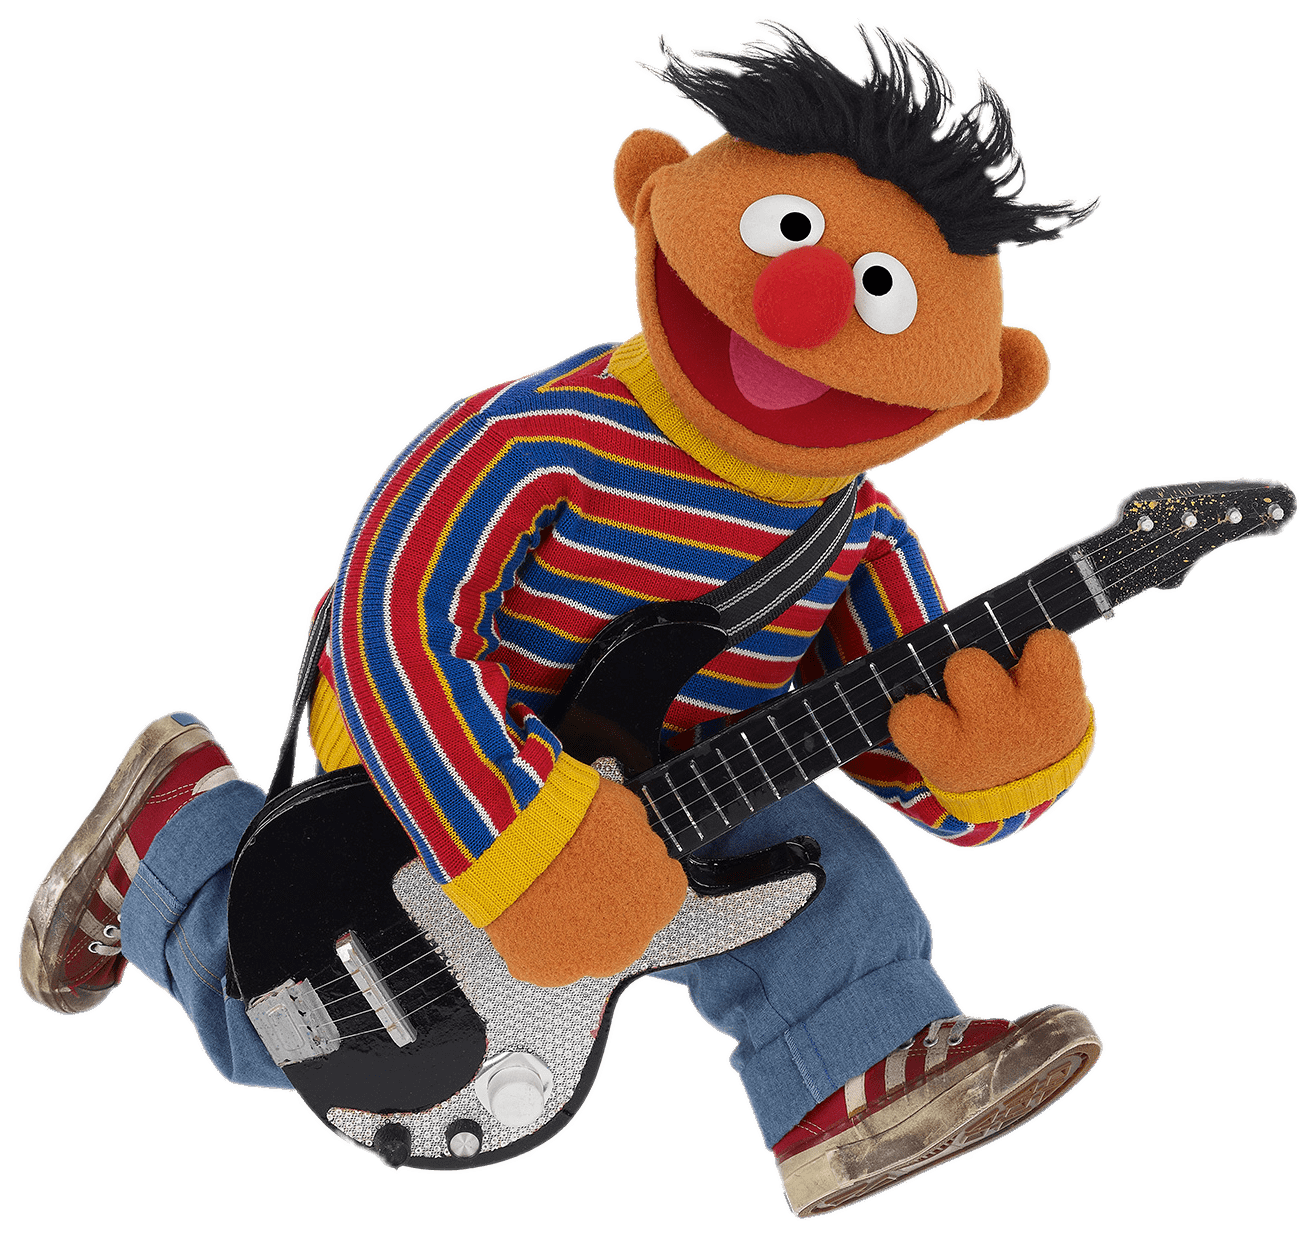 Sesame street png. Ernie with electrical guitar